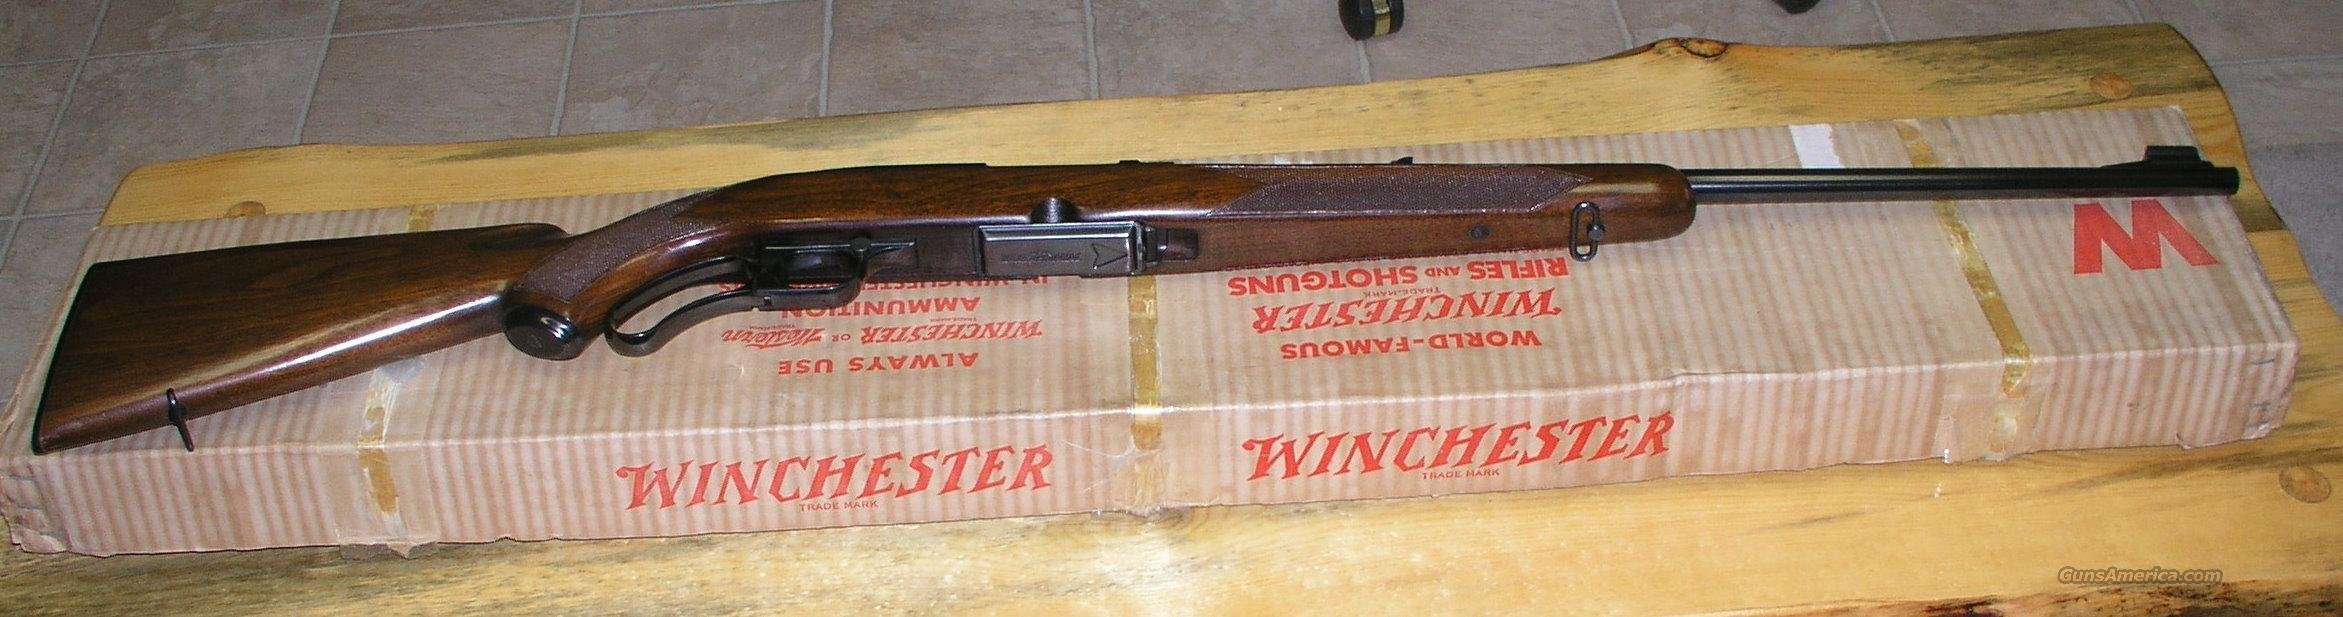 Winchester 88 358 mint with box  Guns > Rifles > Winchester Rifles - Modern Lever > Other Lever > Pre-64